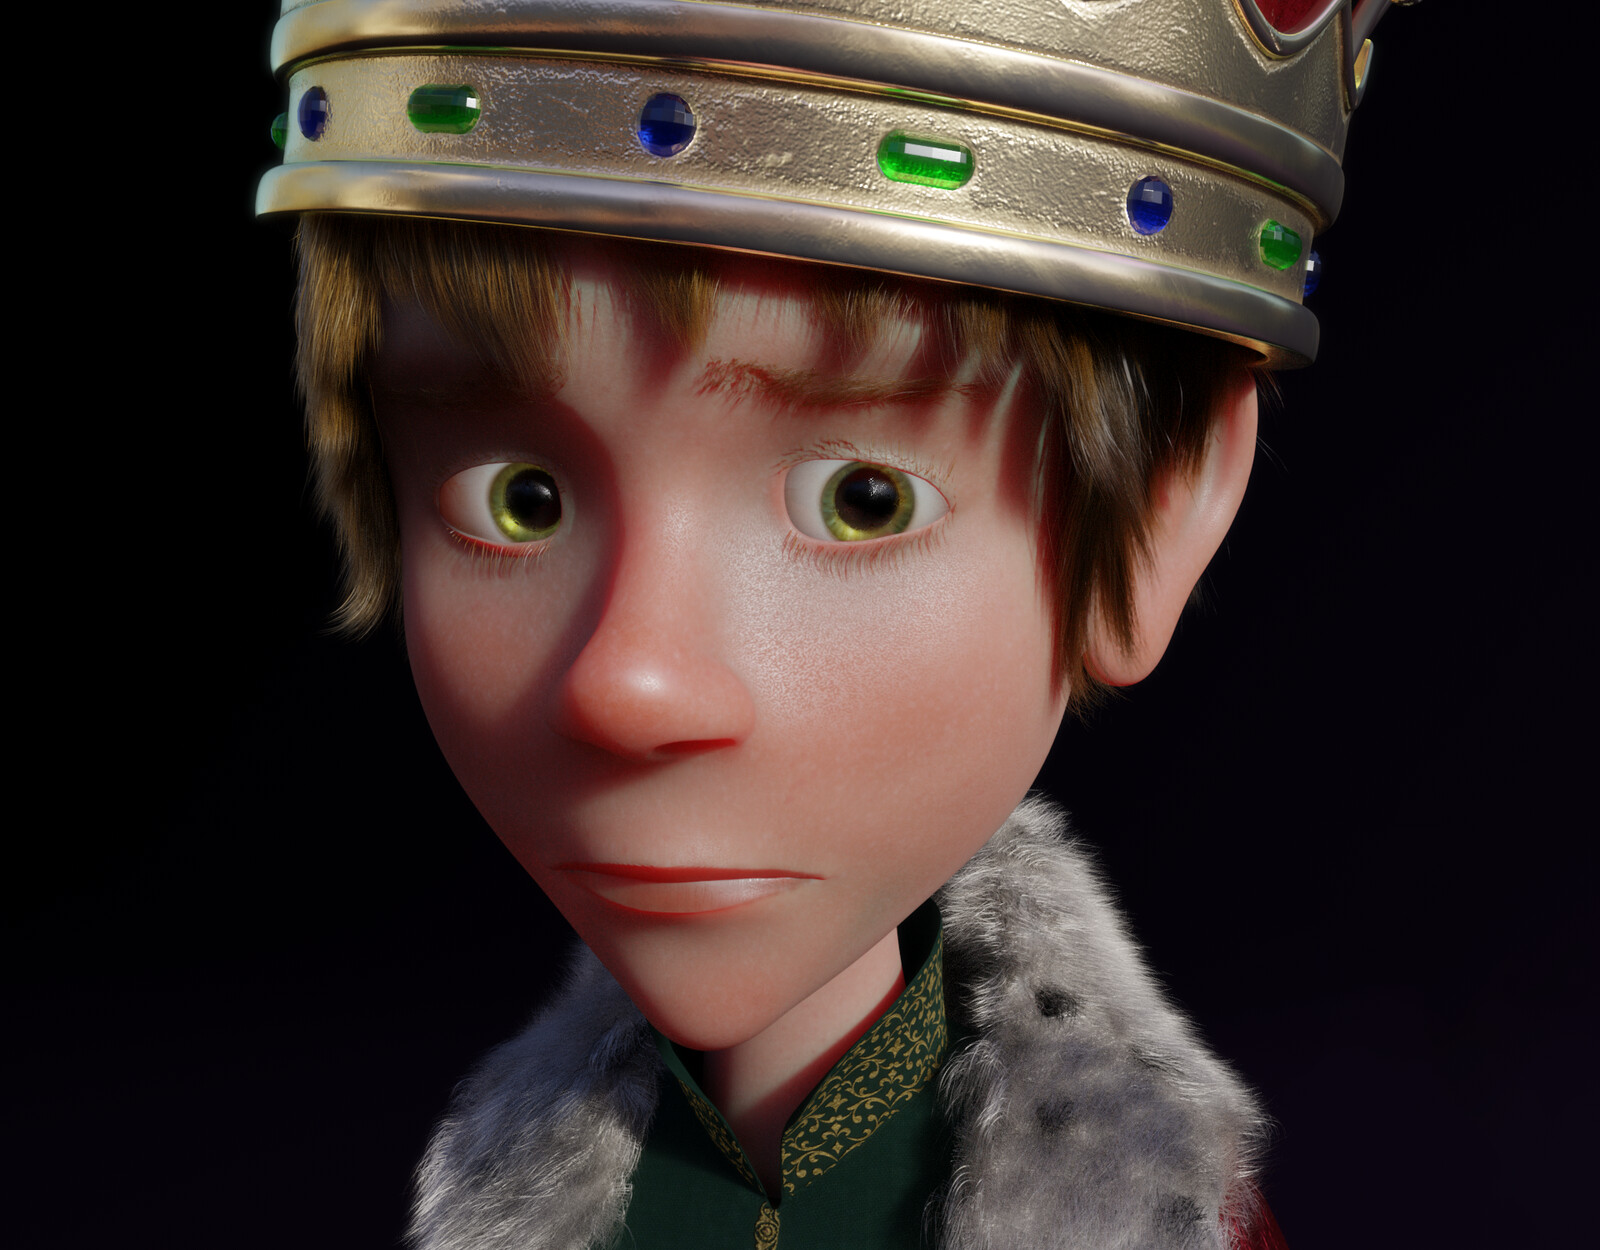 Rightful King of England, Arthur - The Sword in the Stone